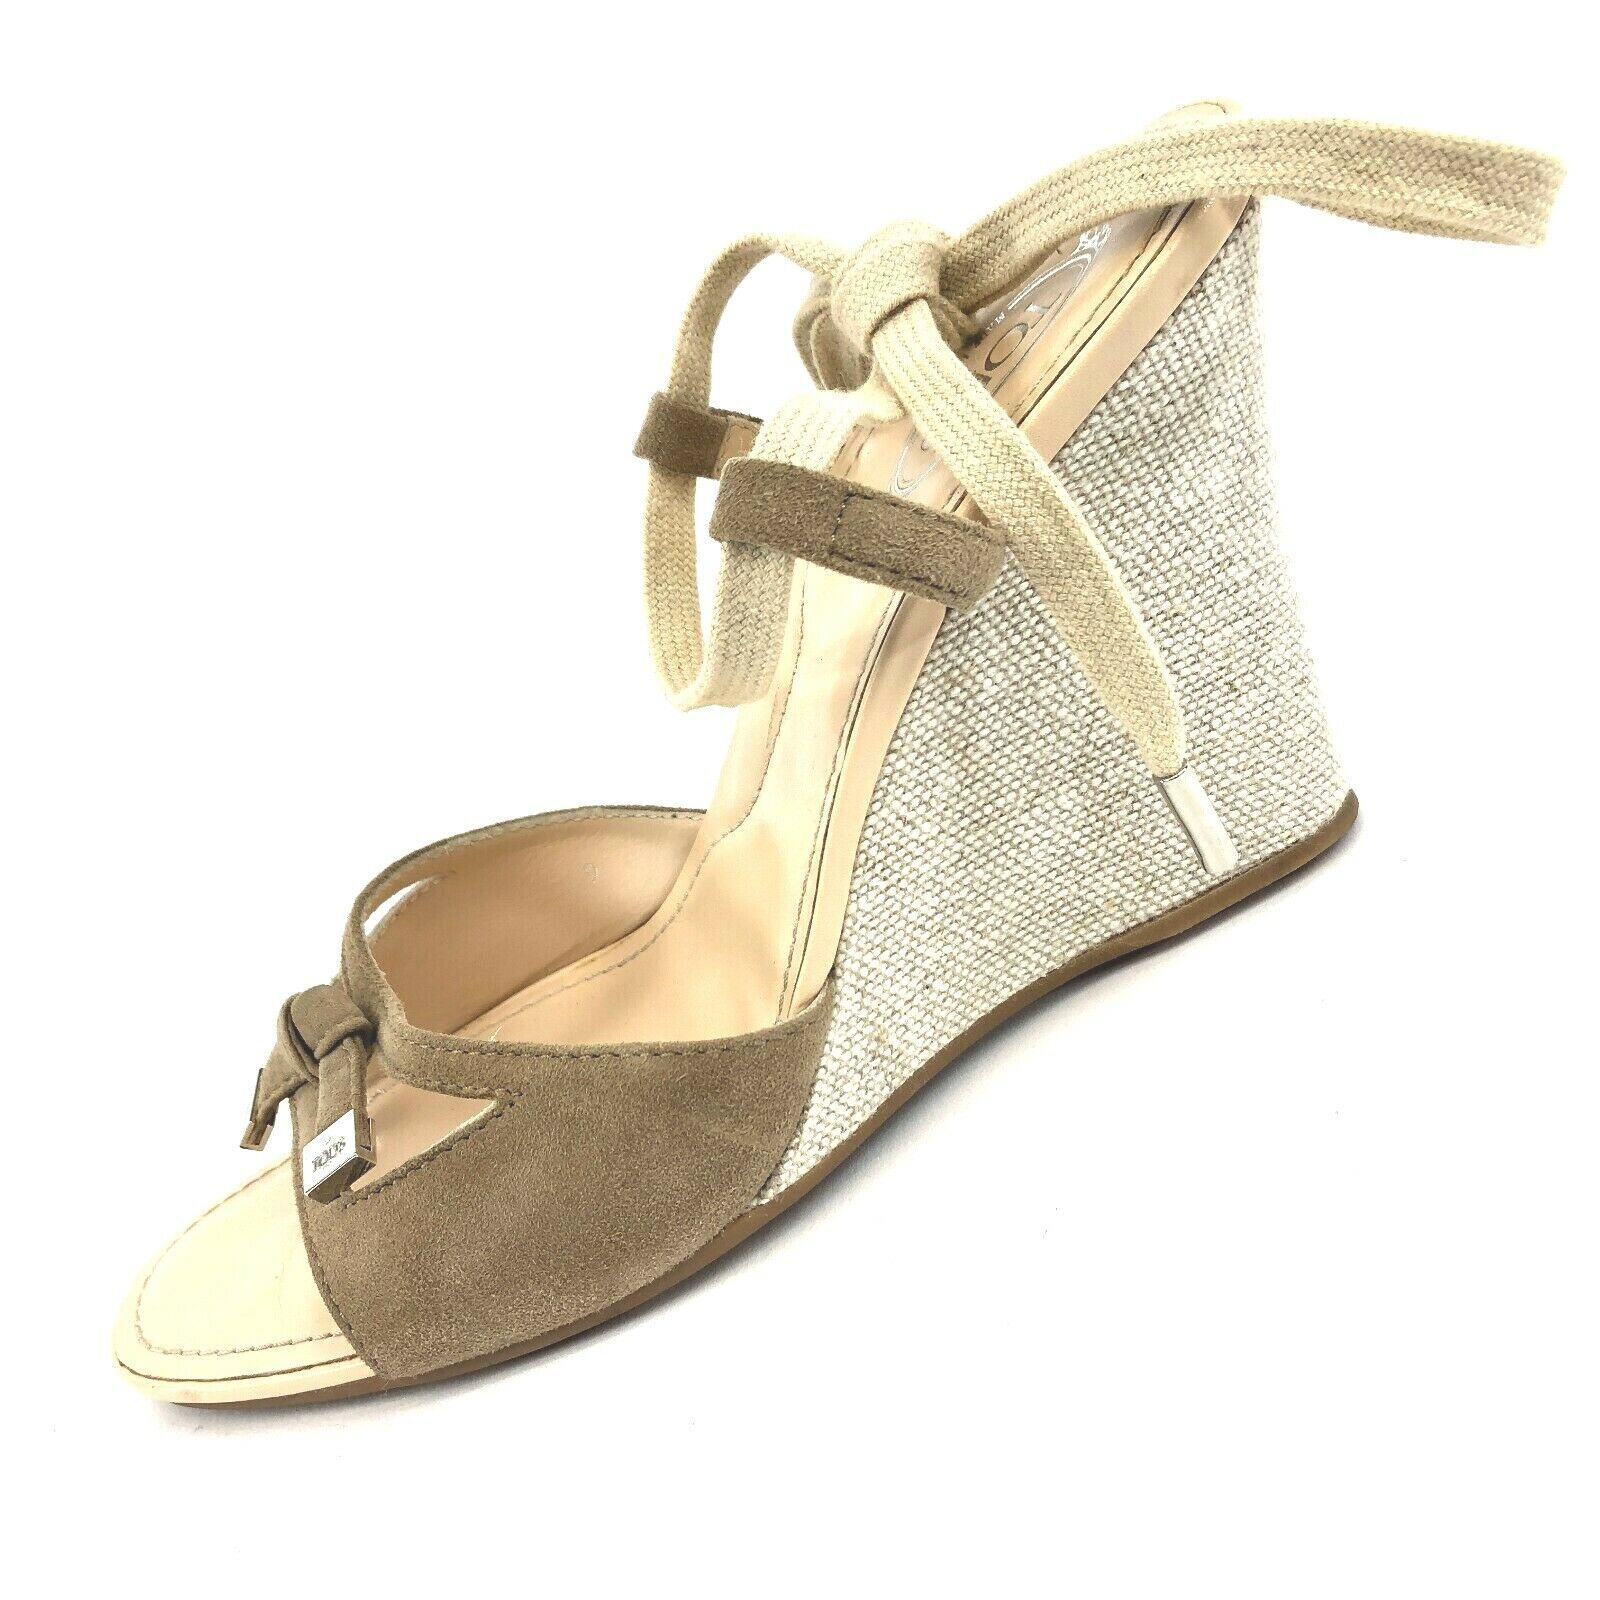 Tods Beige Suede Canvas Ankle Strap Wedge Sandals Made  shoes UK 6 US 8.5